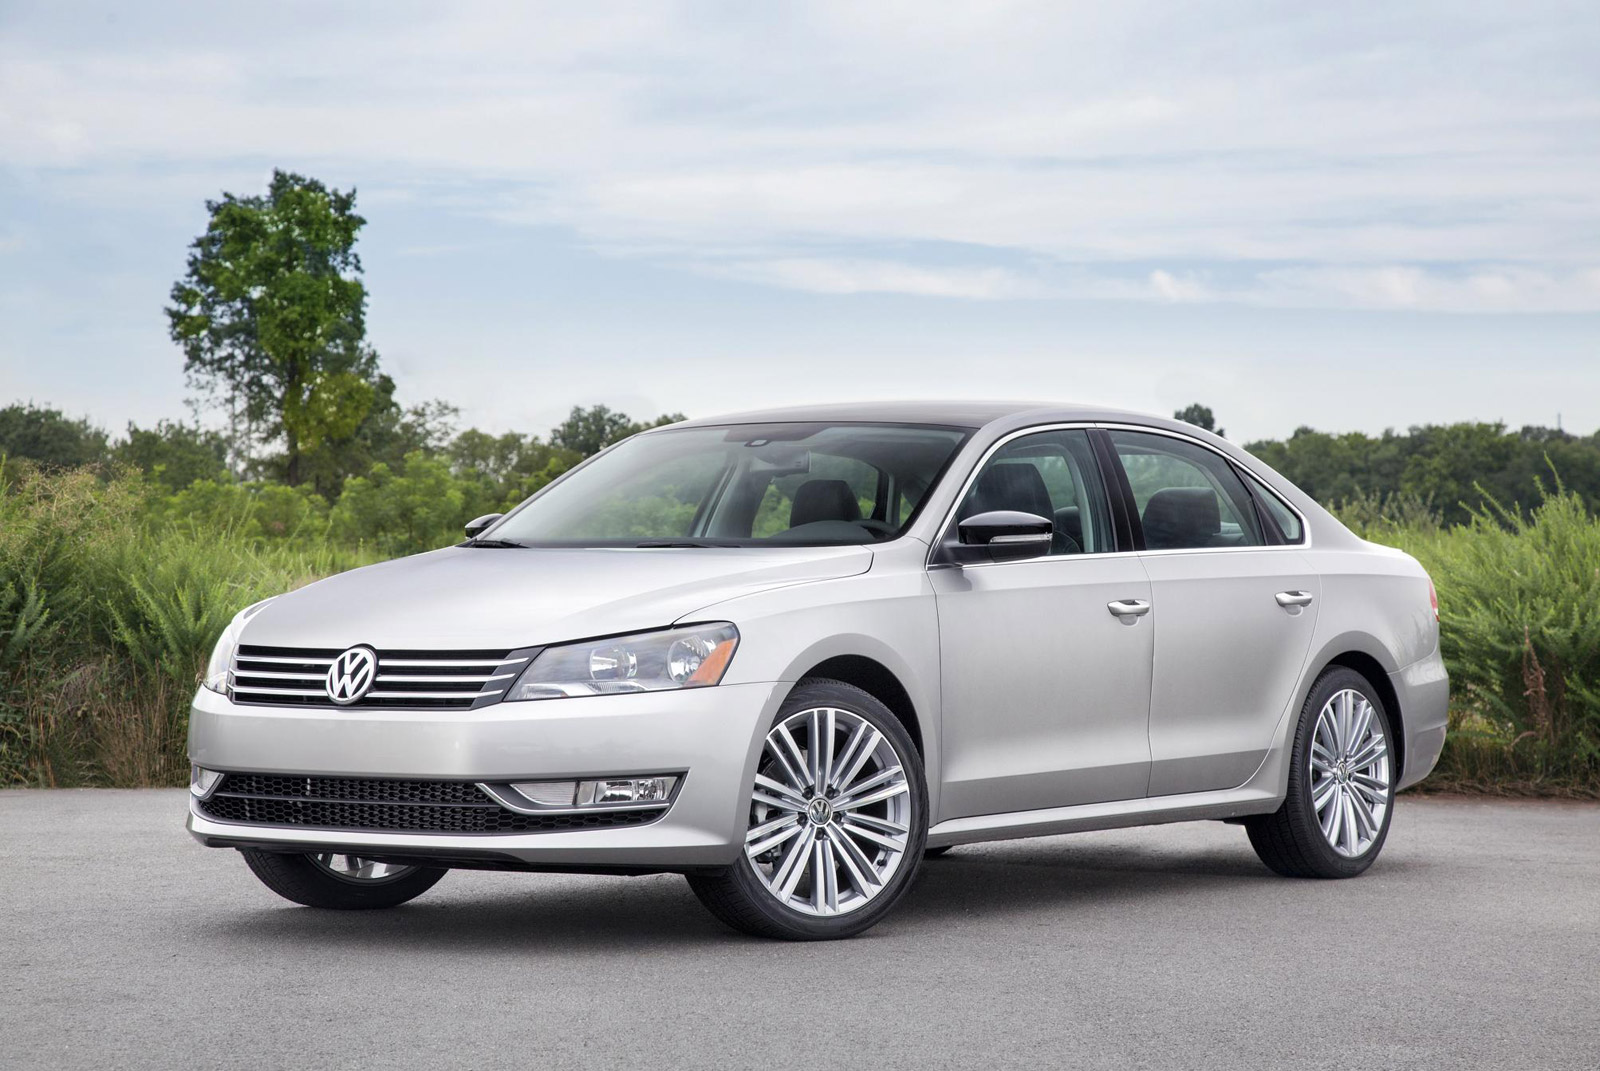 Louisville Land Rover >> 2014 Volkswagen Passat (VW) Review, Ratings, Specs, Prices, and Photos - The Car Connection